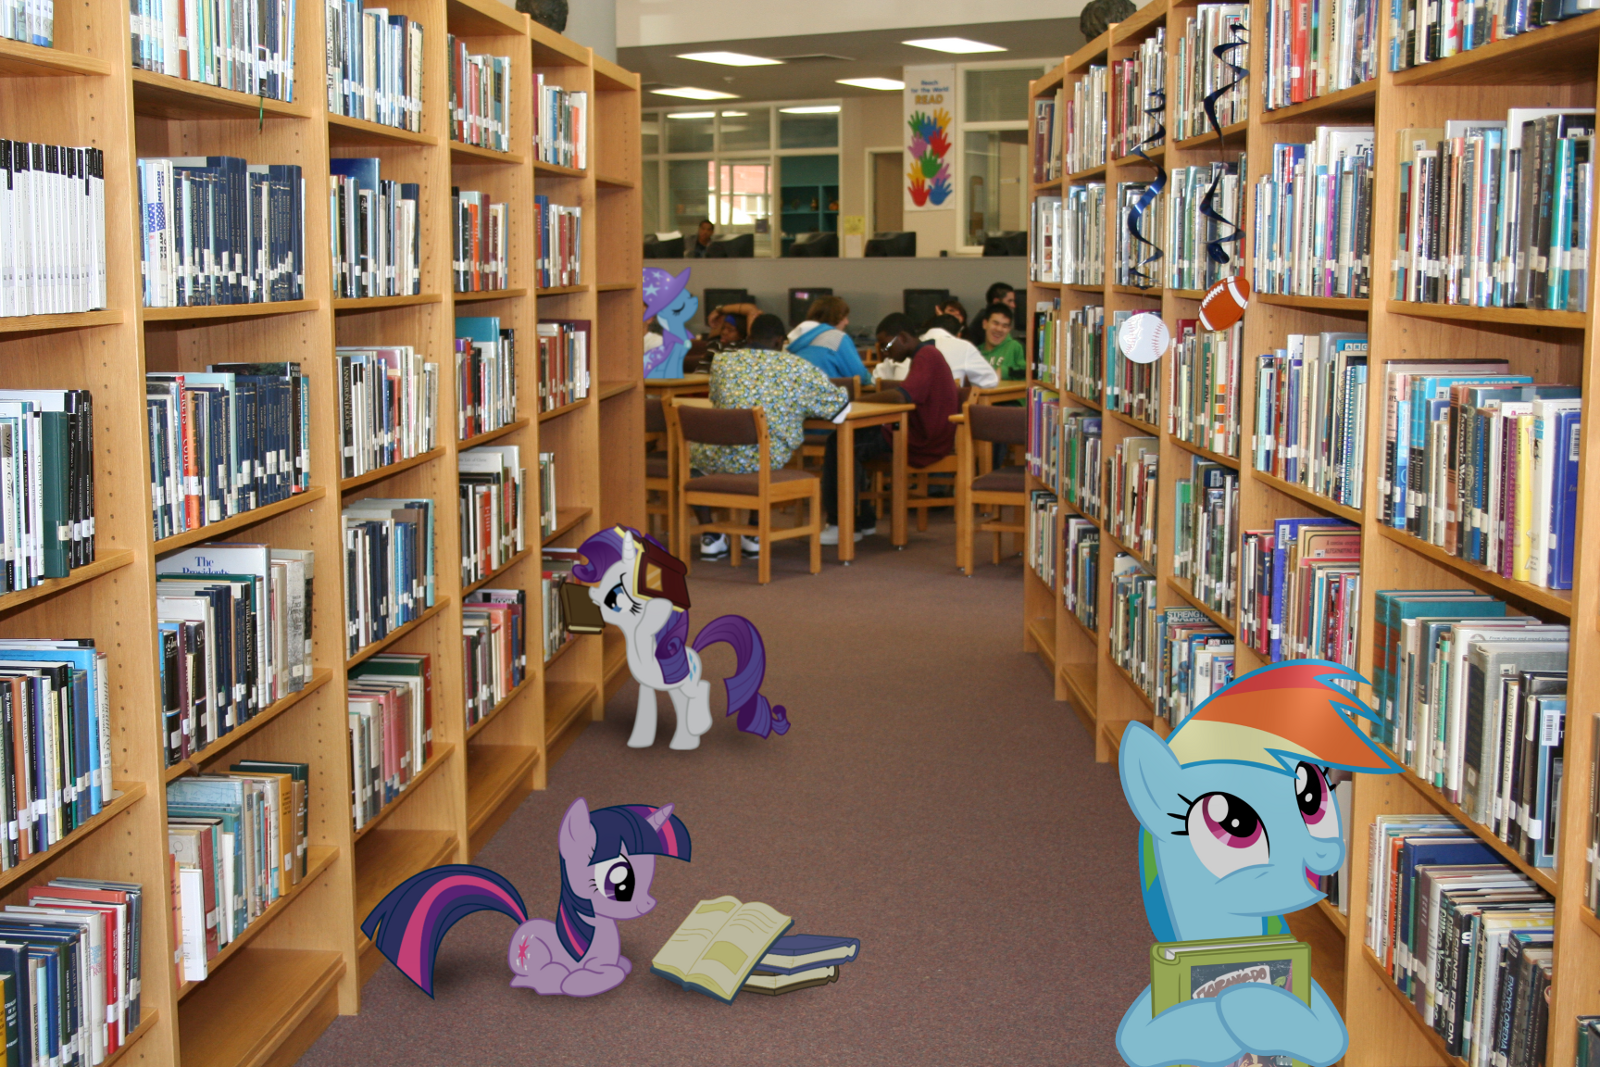 Ponies in a Library by Bryal